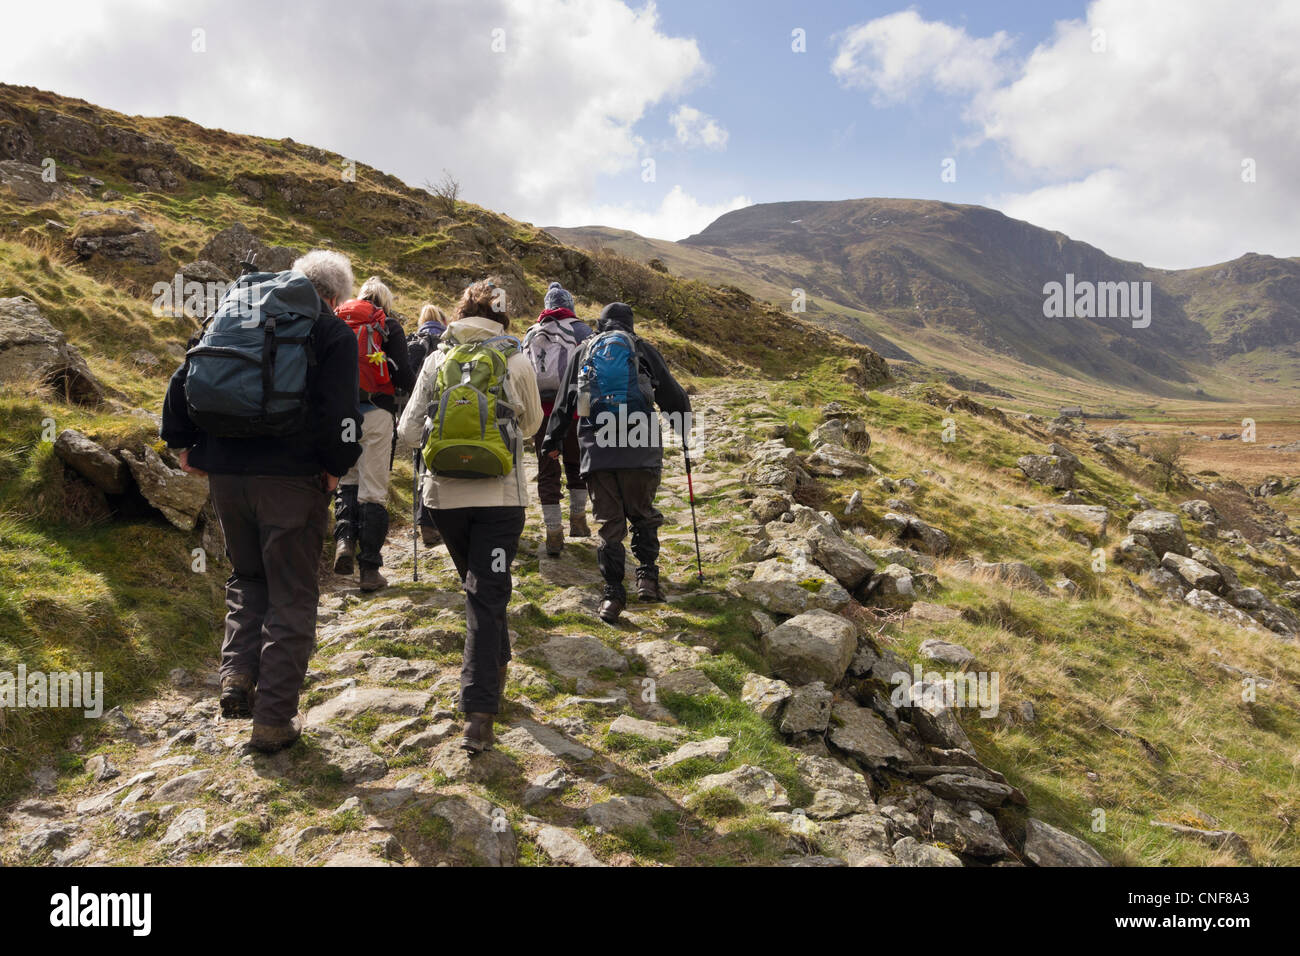 Ramblers group walking along the valley in mountains of Snowdonia National Park. Cwm Eigiau Conwy North Wales UK - Stock Image